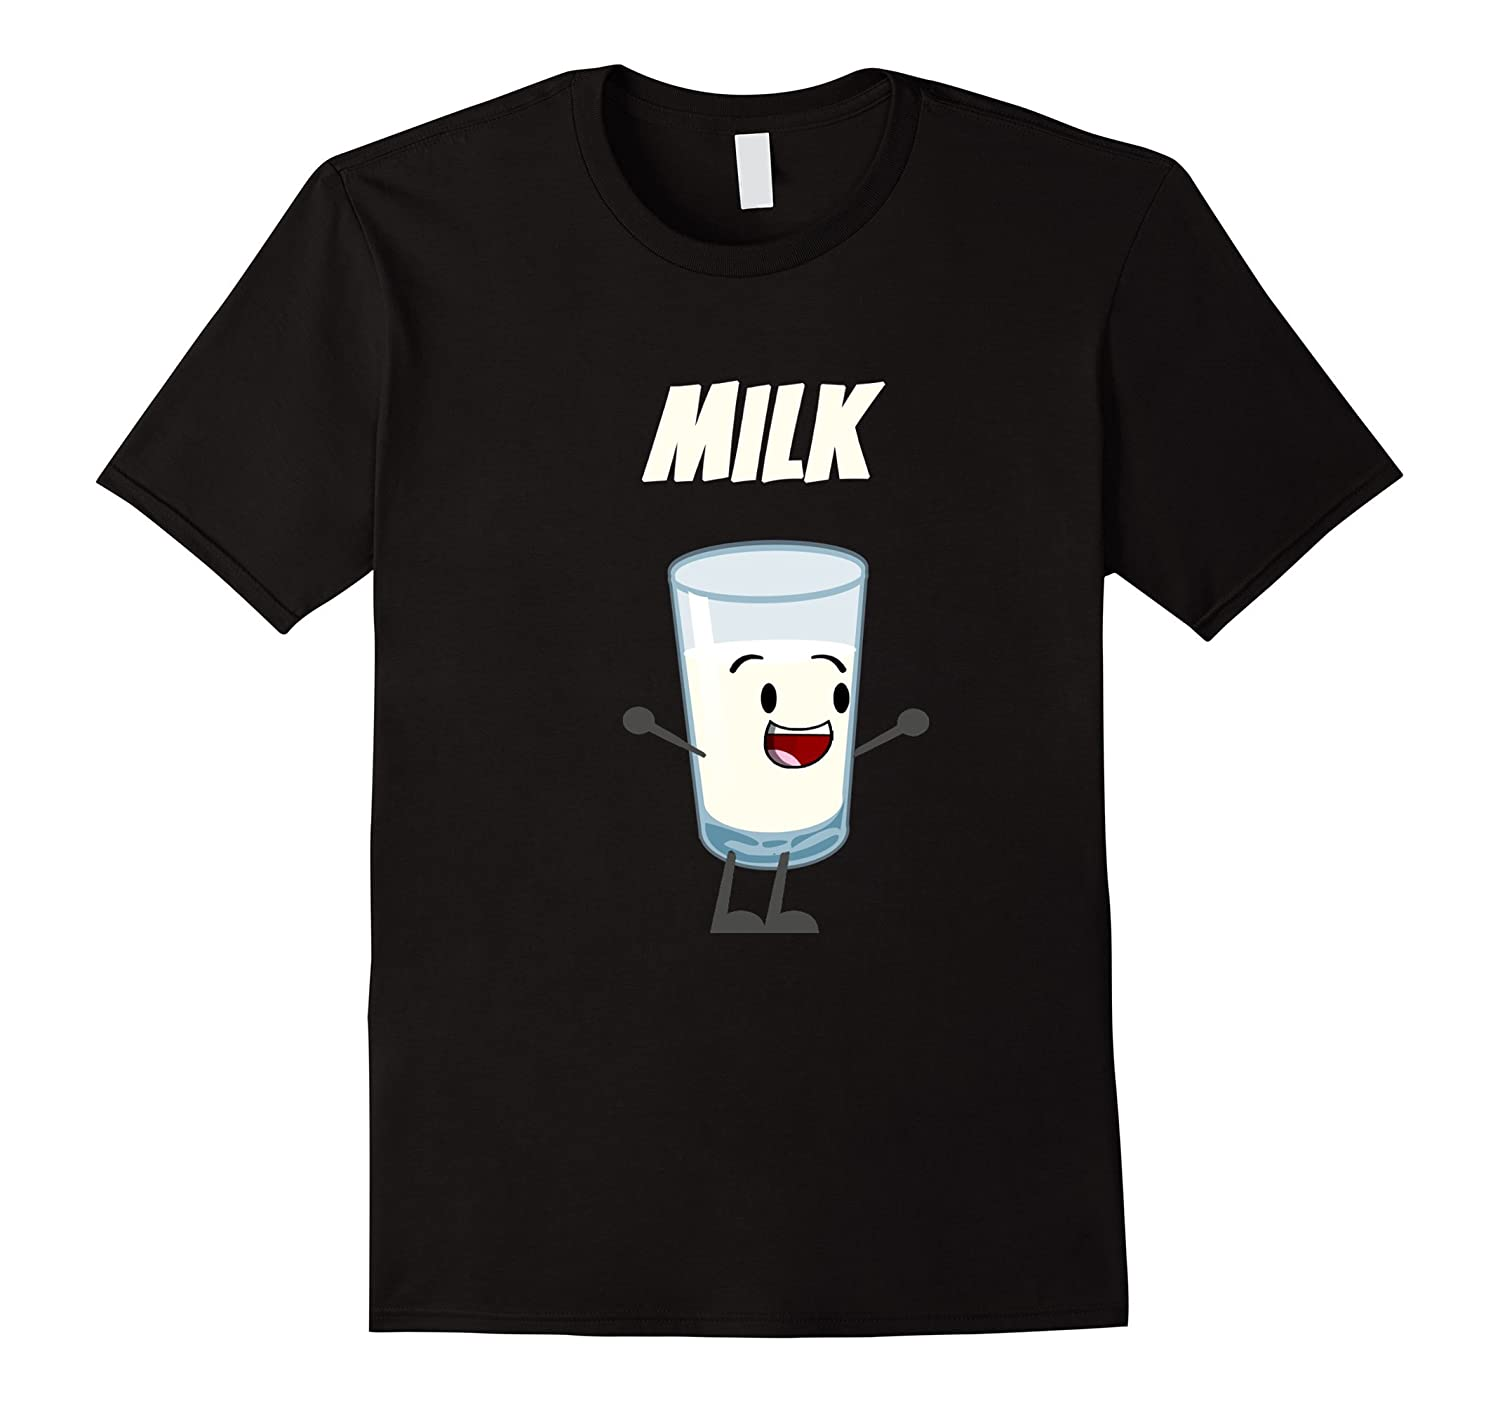 Milk and Cookies Couples Halloween Costume ...  sc 1 st  Anztshirt & Milk and Cookies Couples Halloween Costume T-Shirt-ANZ - Anztshirt